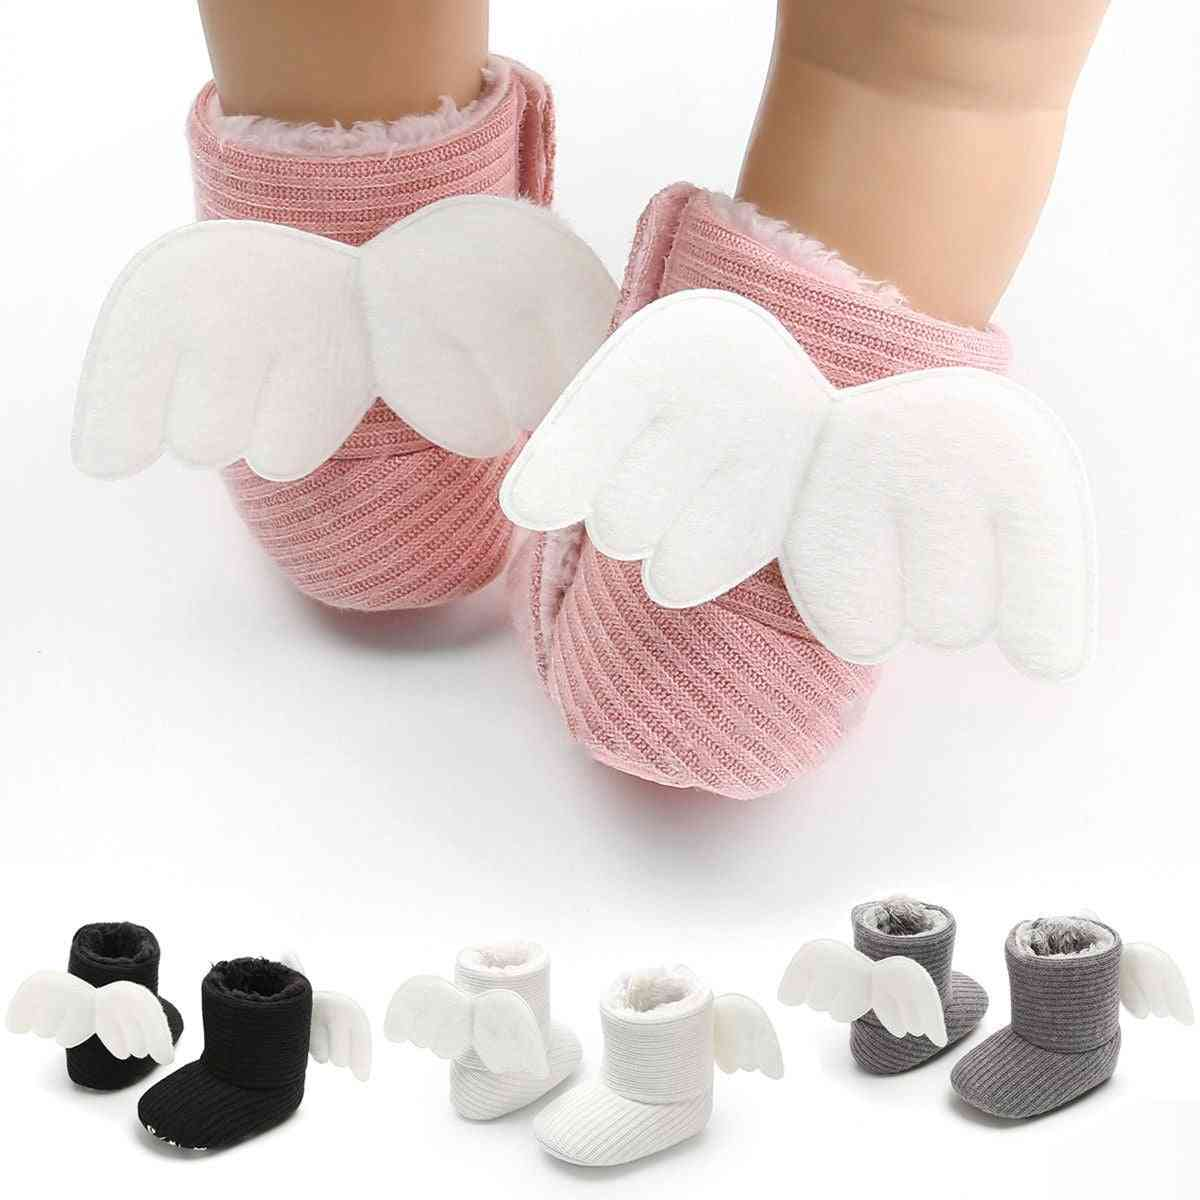 Soft Baby Booties Crib Boots / Shoes With Angle Wings